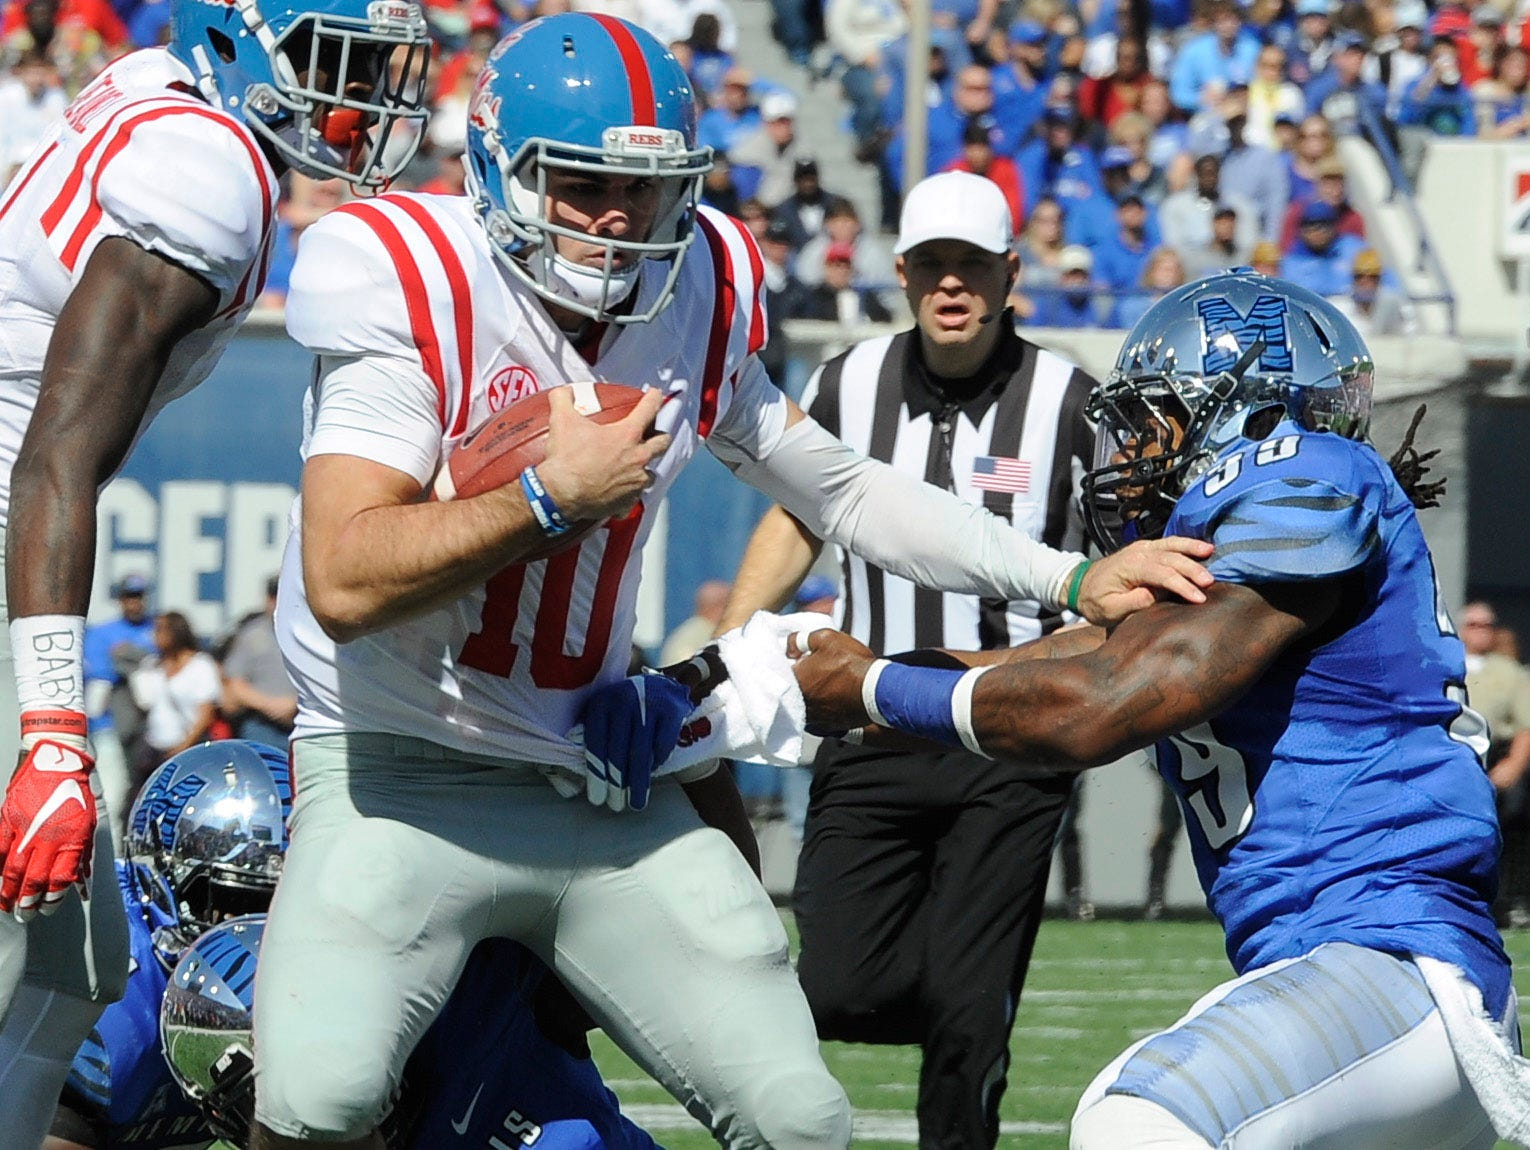 Ole Miss needs quarterback Chad Kelly (10) to continue his early success against Texas A&M's strong secondary on Saturday.